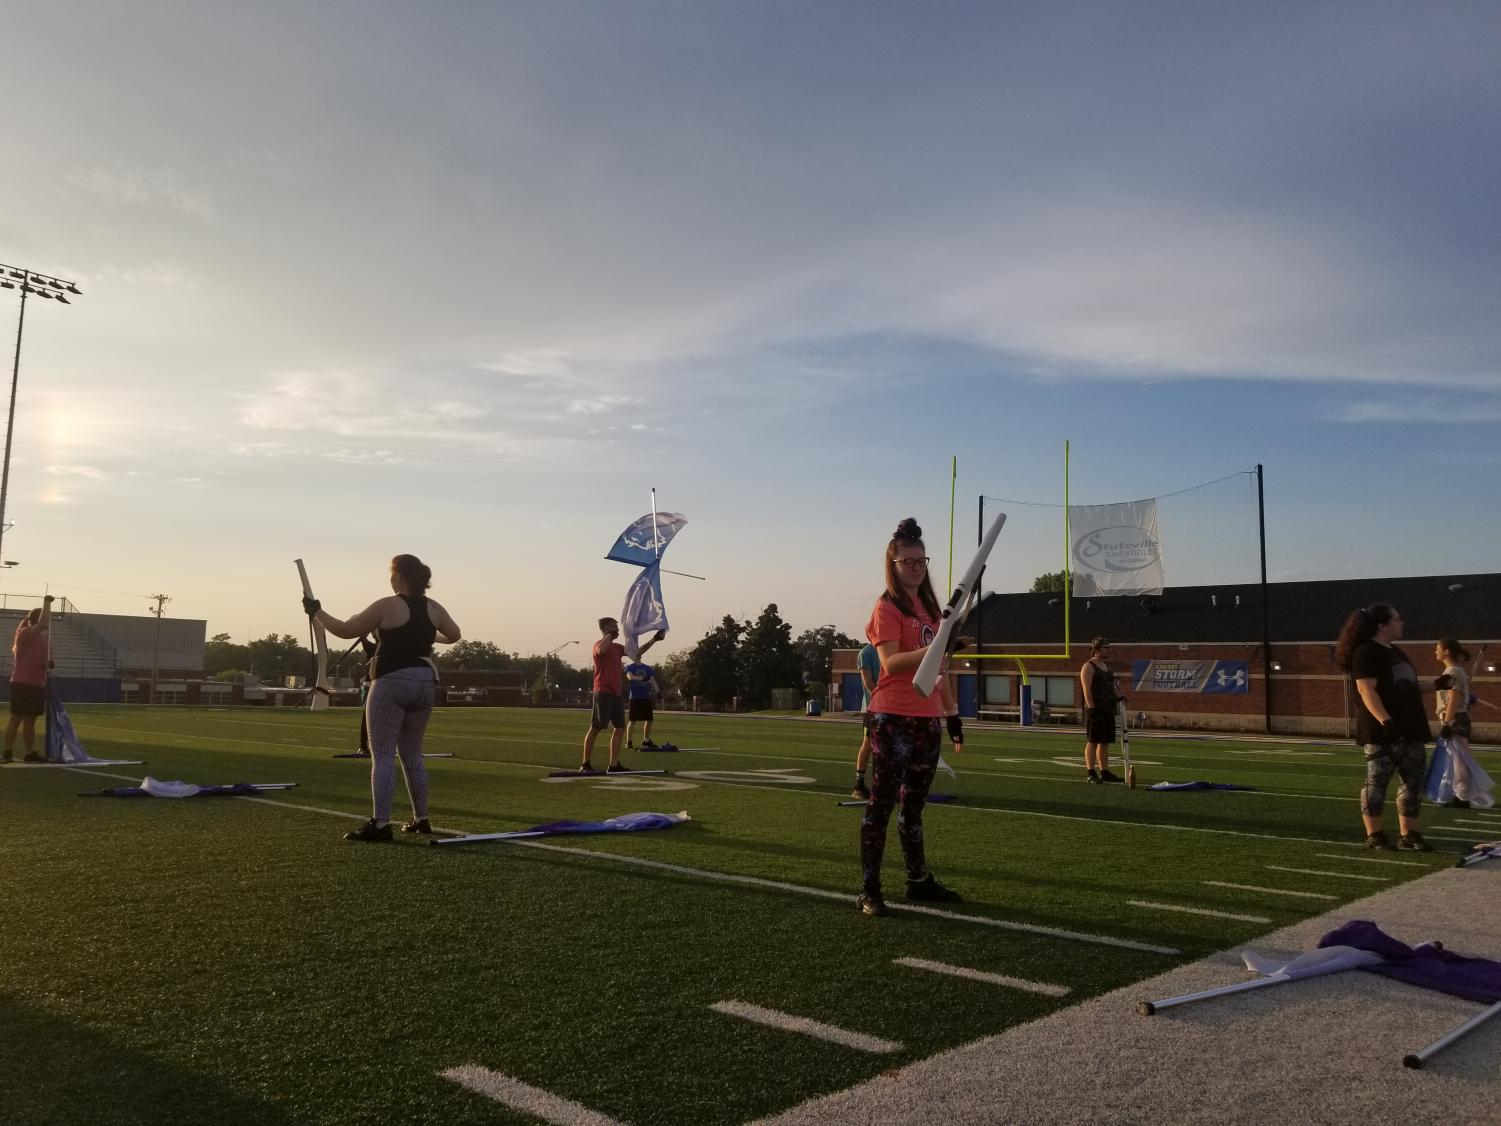 The Southeastern Band and Color Guard wakes up before the sun to begin morning practice every weekday from 7:30 a.m. to  9 a.m. Guard Members featured from left to right: Trey Wier, Lydia Finch, Nicholas Herfurth, Dalton Amiott, Destiny LaRue, Wesley Ridenhour, Katie Hester and Katie Thomas.